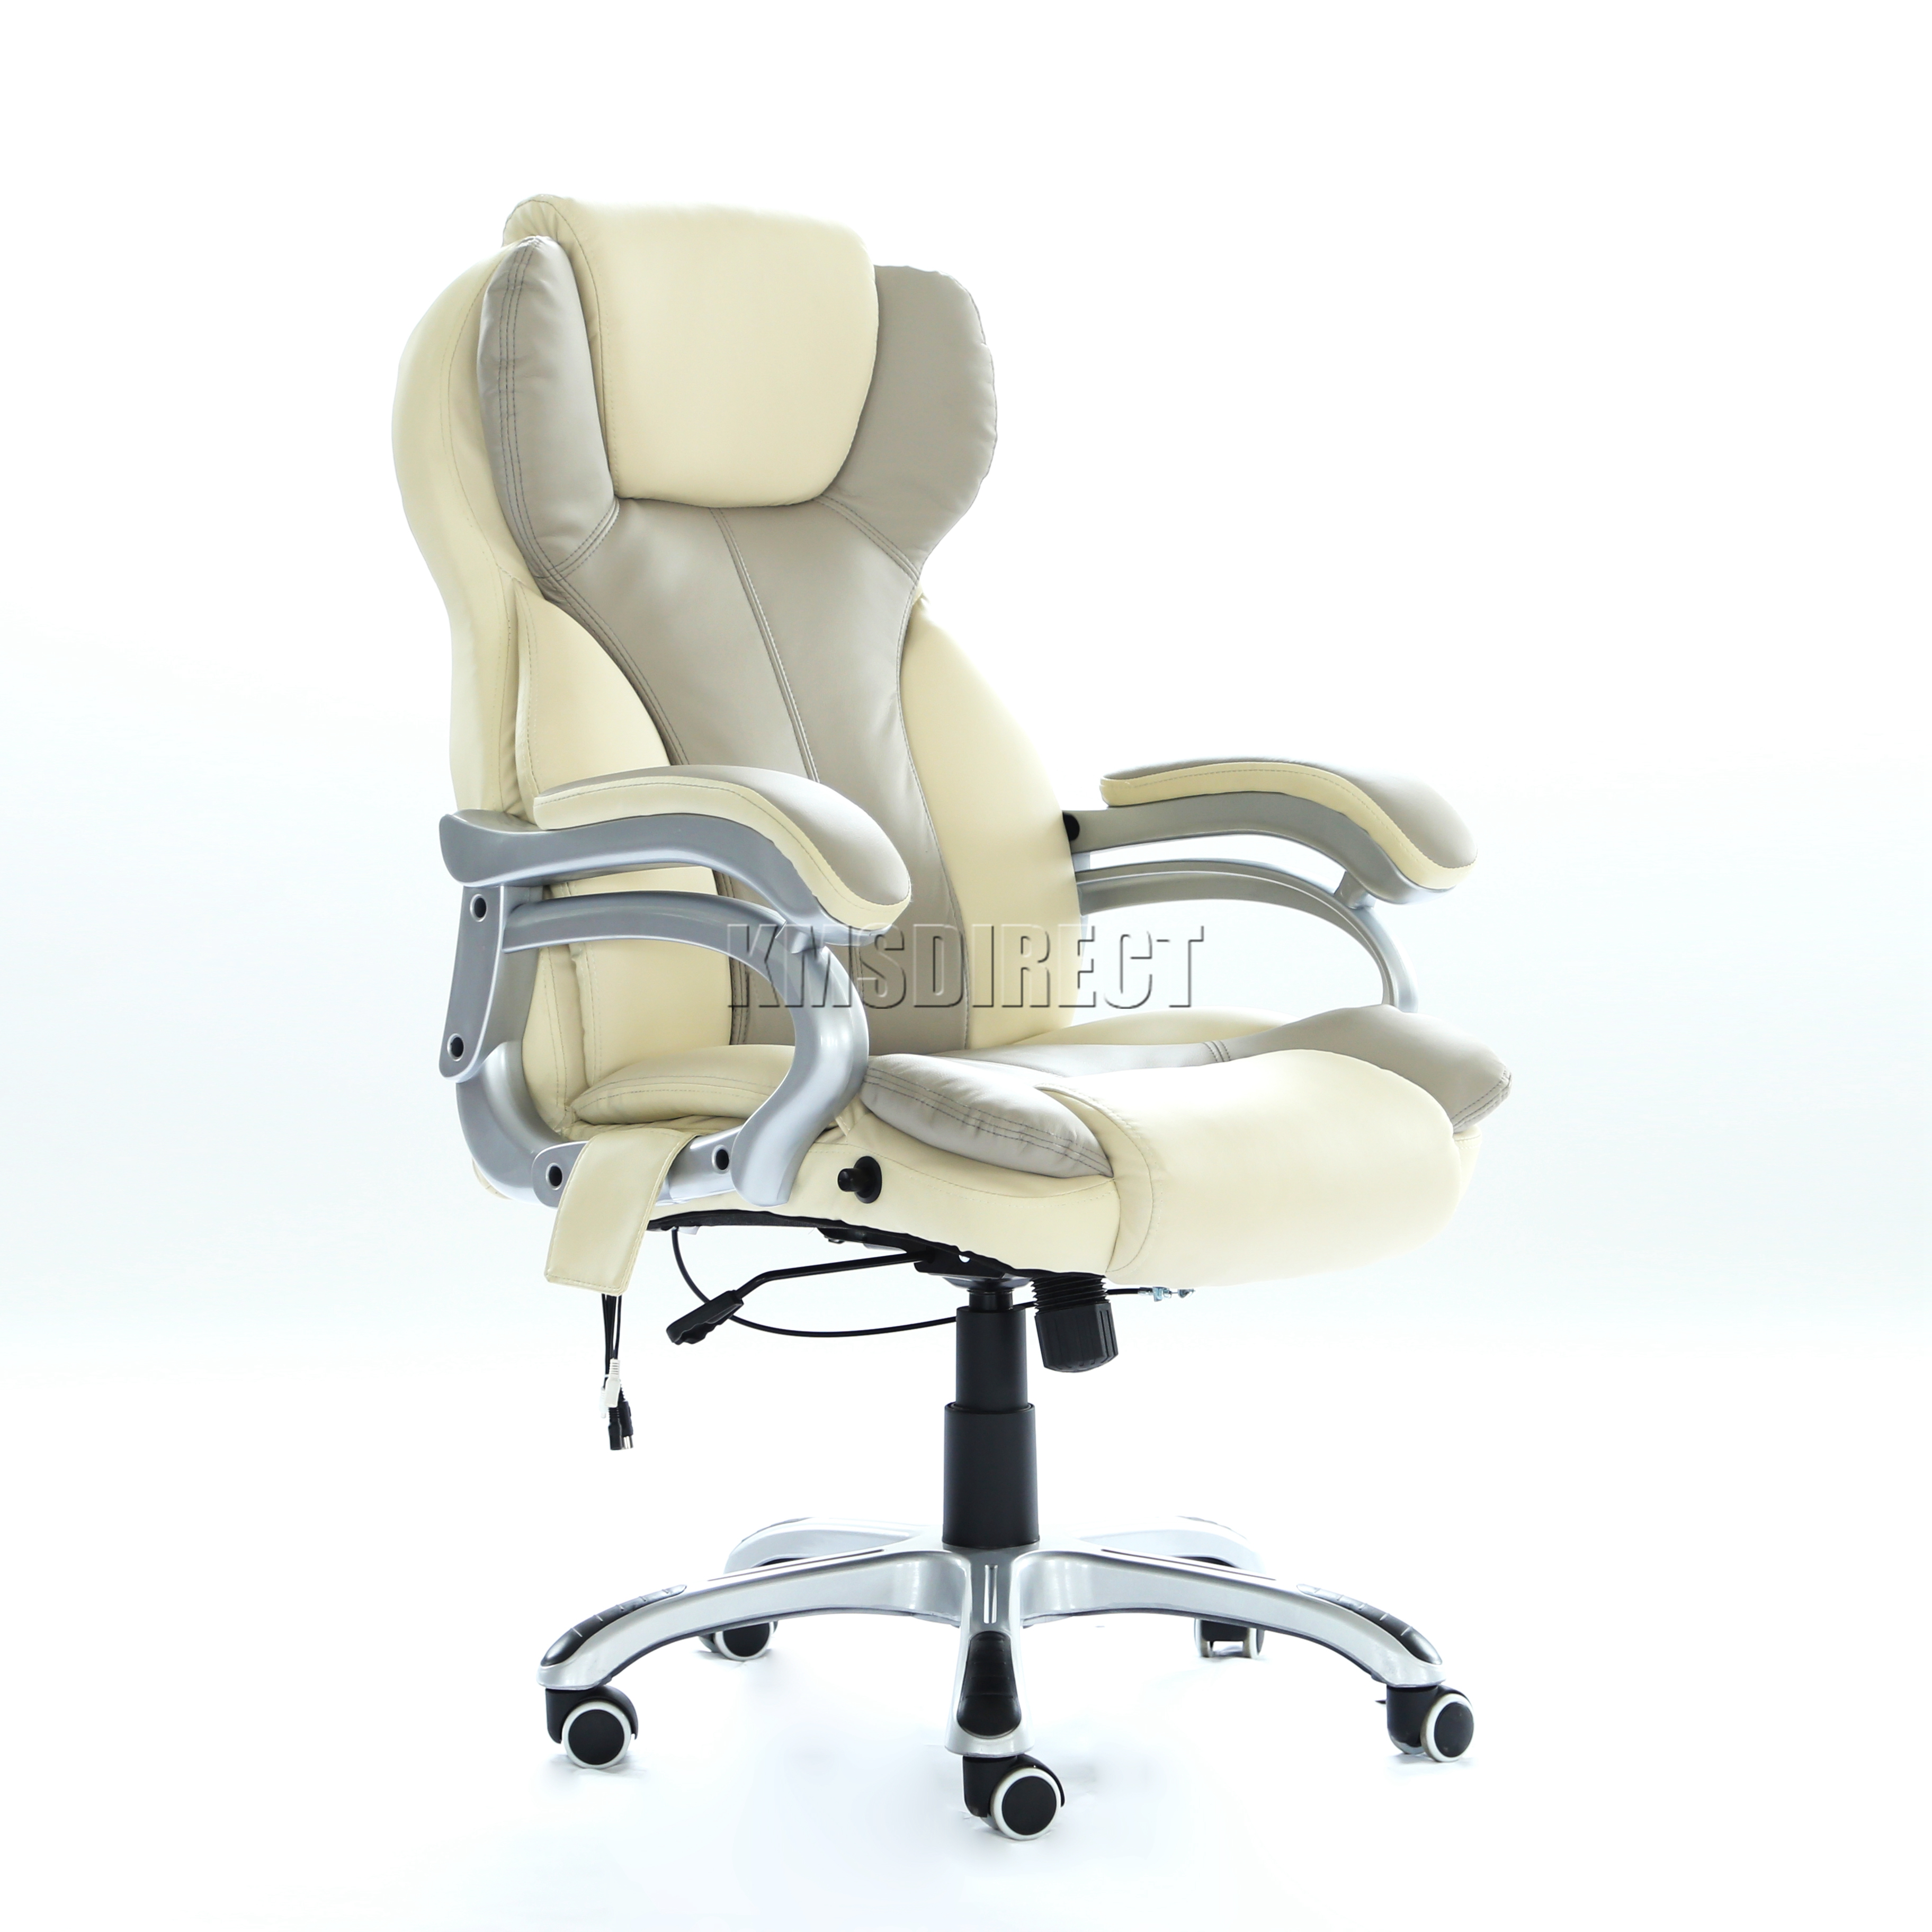 luxury office chair. sentinel foxhunter luxury 6 point massage office computer chair reclining mc8074 cream